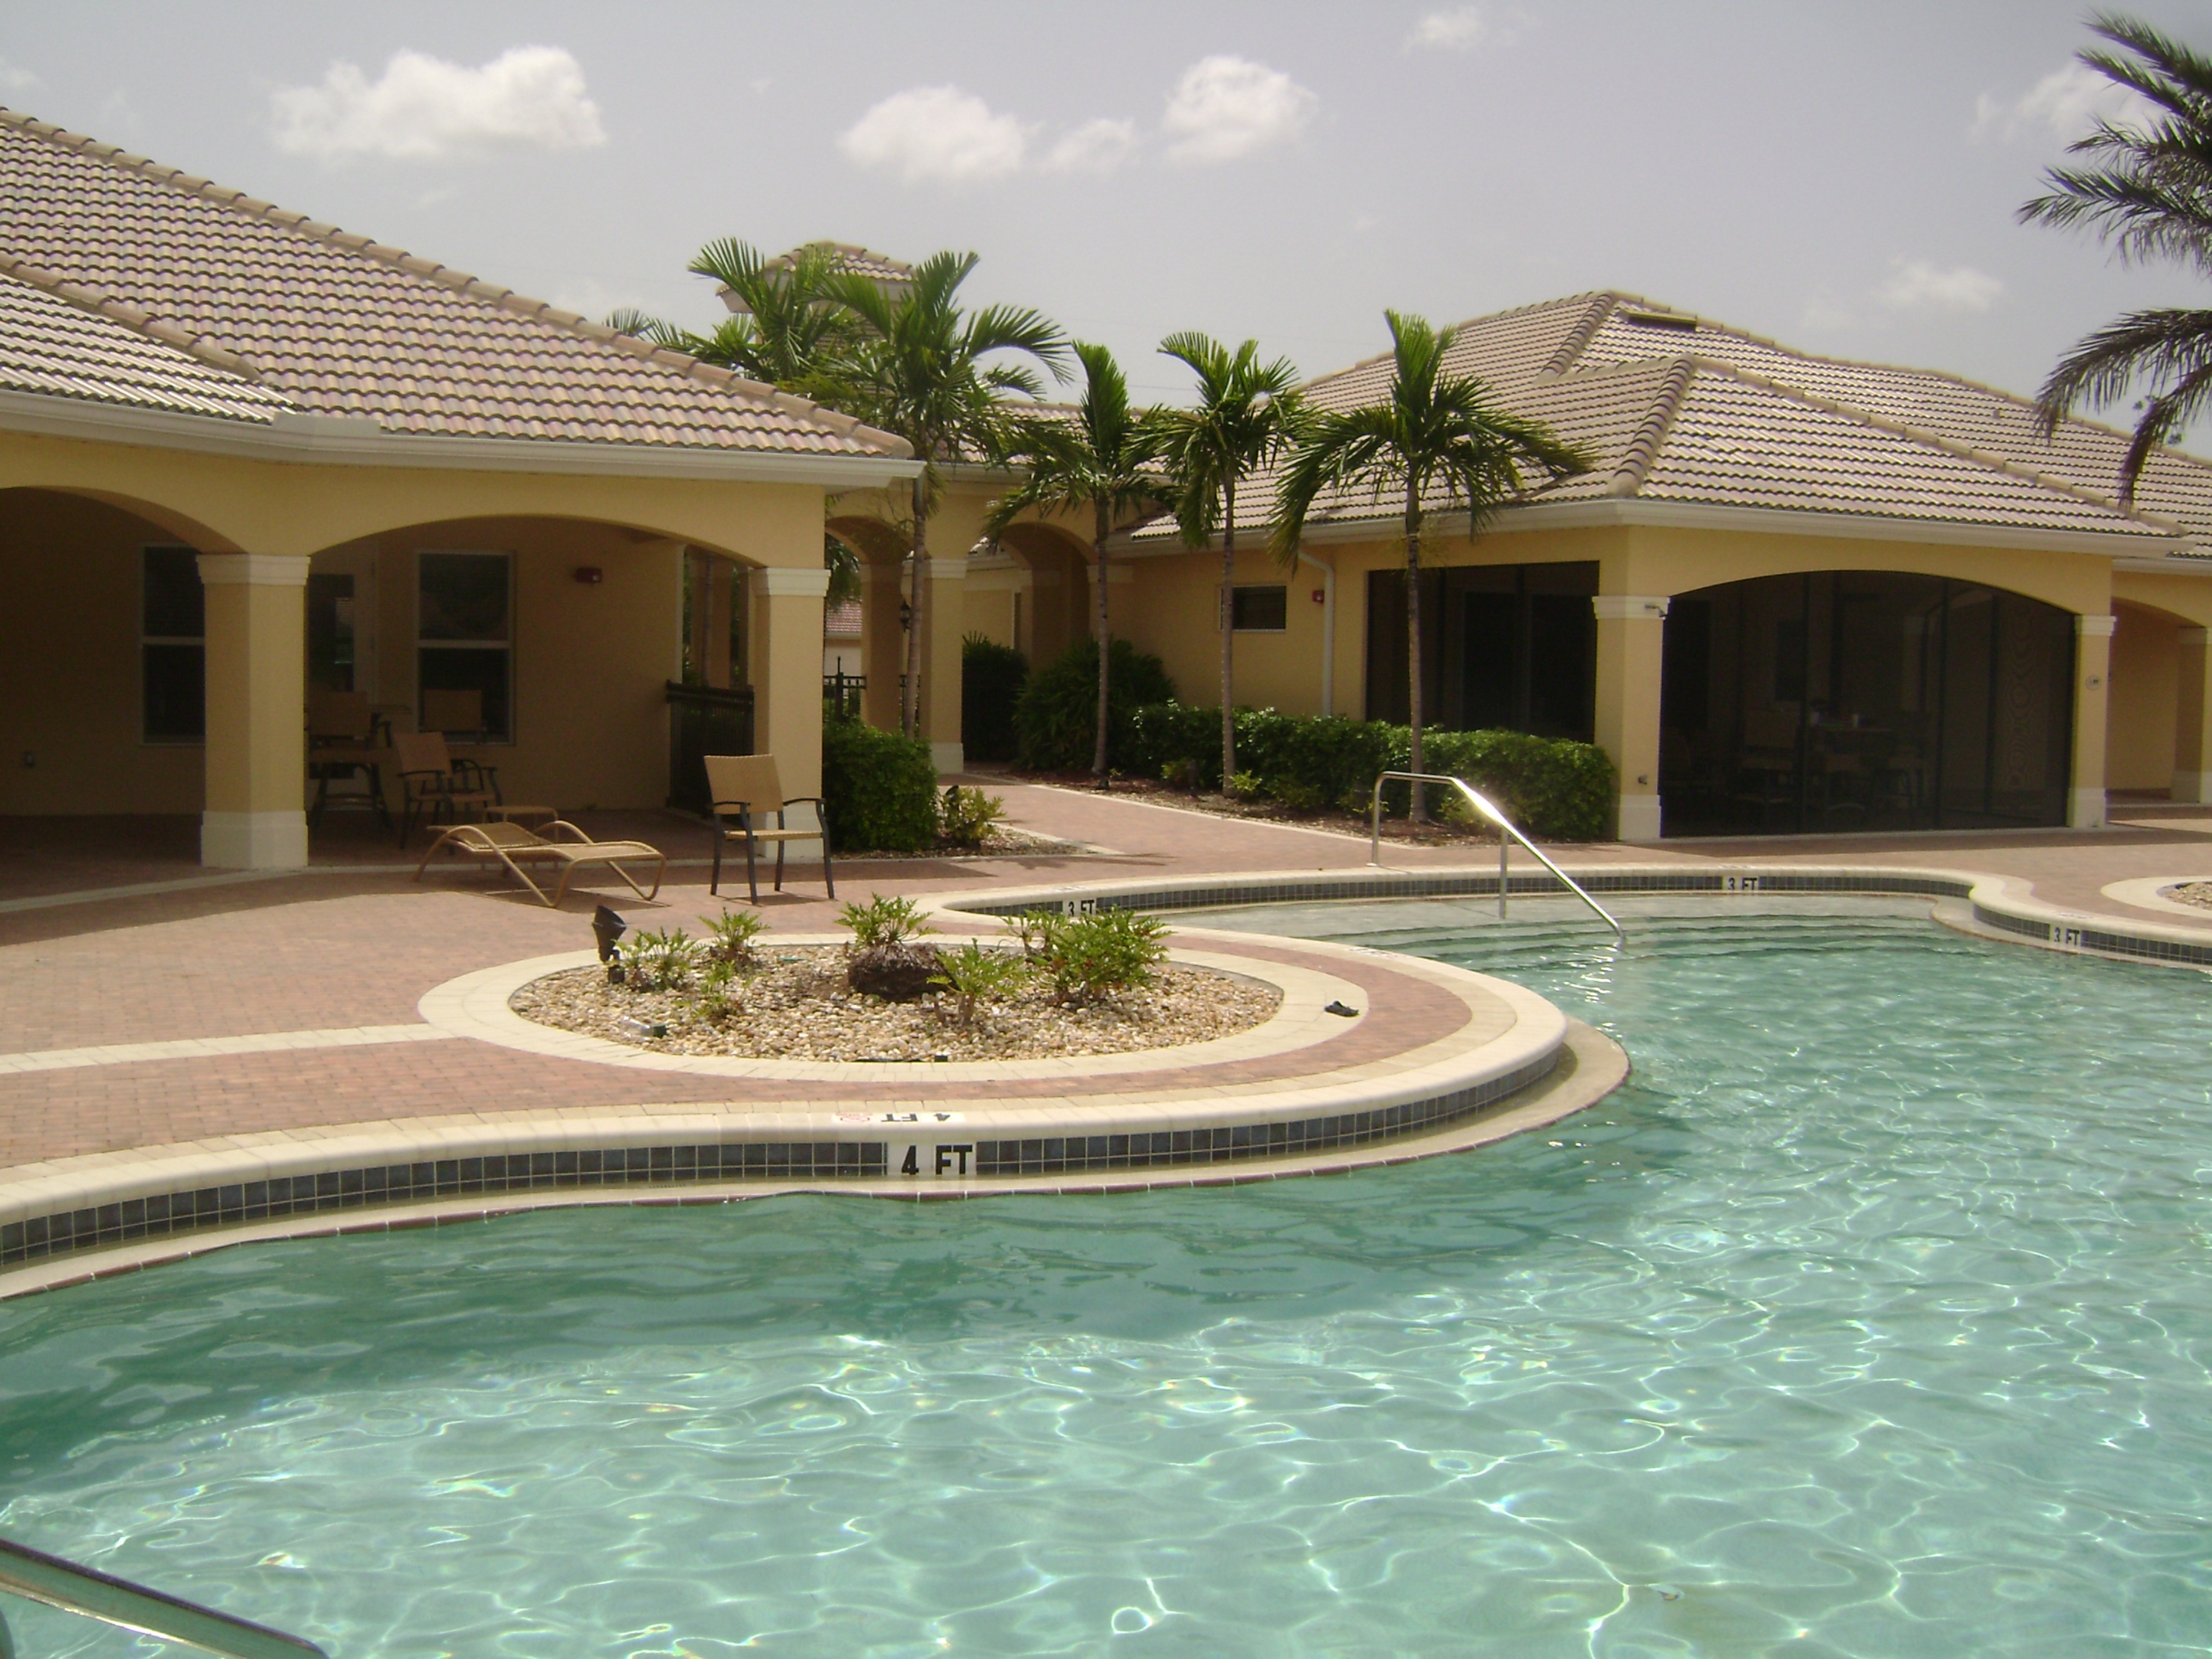 Pool at Tuscany Cove in Naples, Florida.